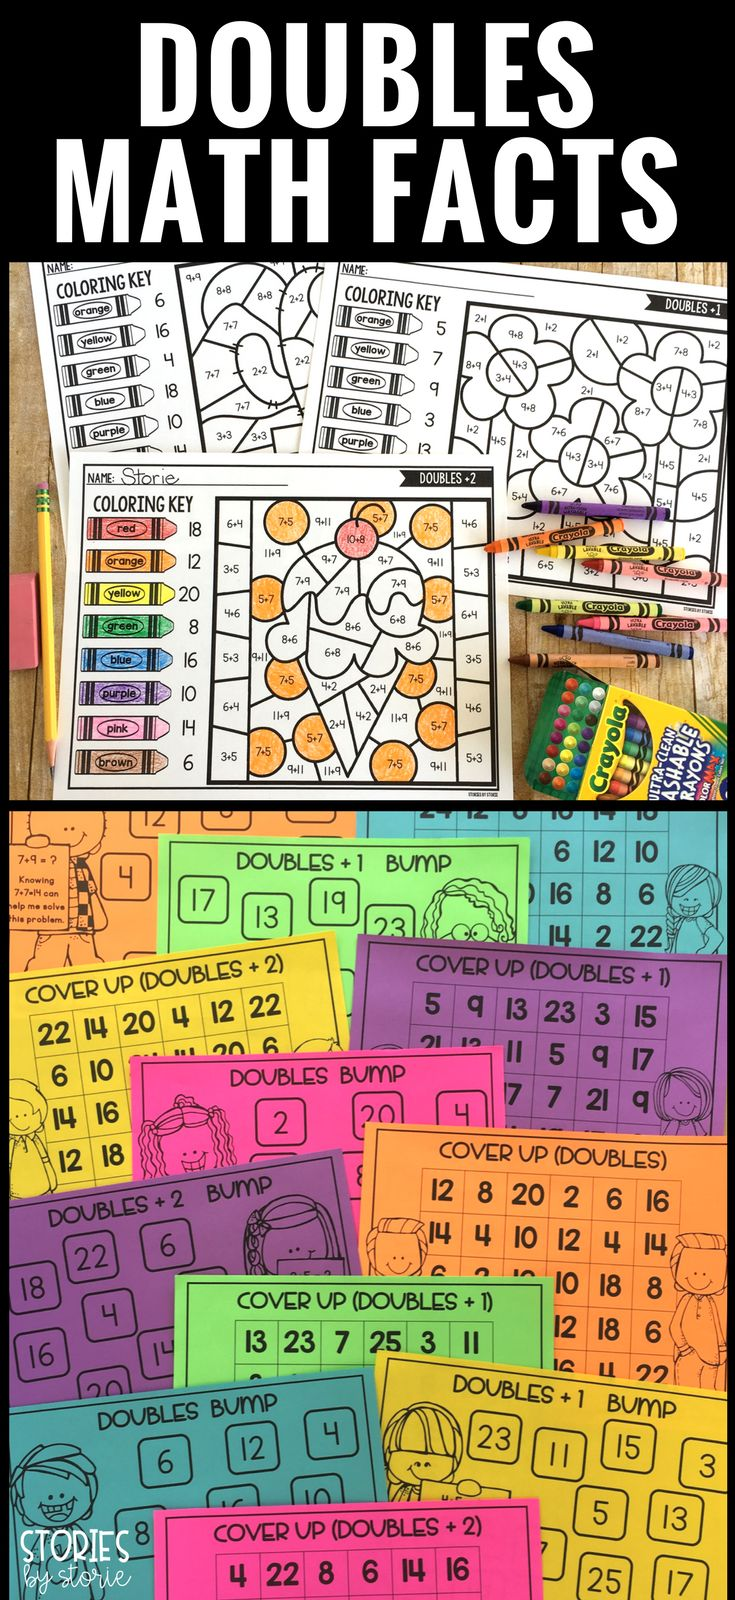 Looking for a fun way to practice doubles facts? Take a look at these games! Students will get the practice they need while having fun. Included are three games for doubles facts, three games for doubles + 1 facts, and three games for doubles + 2 packs. There are also anchor charts, practice pages, and color by number pages. #mathgames